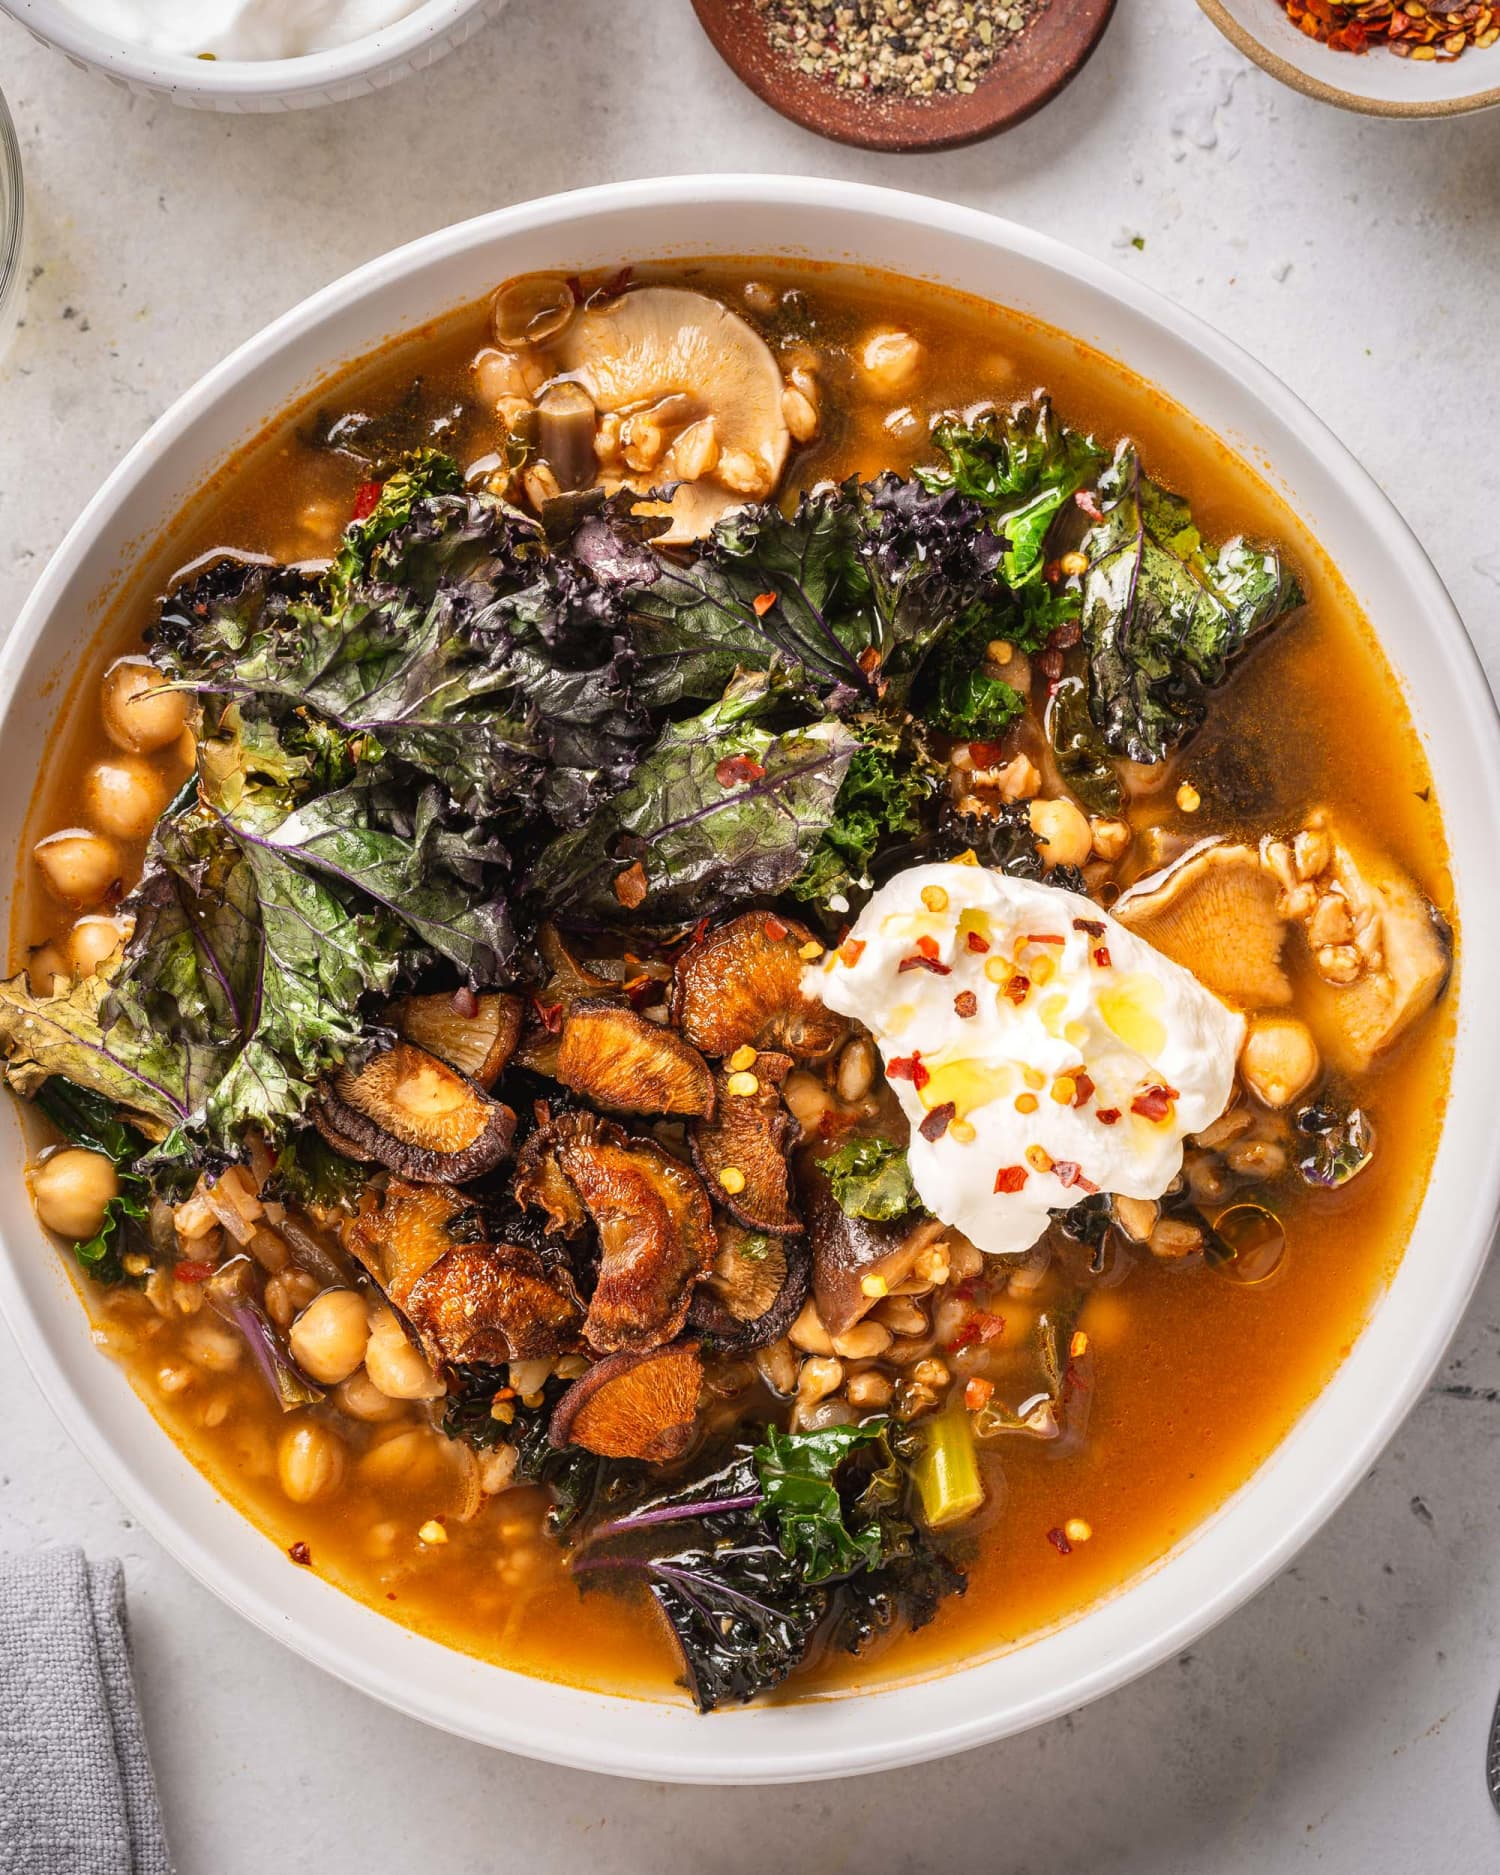 I Thought I Didn't Like Soup — But This Mushroom Soup Changed My Mind